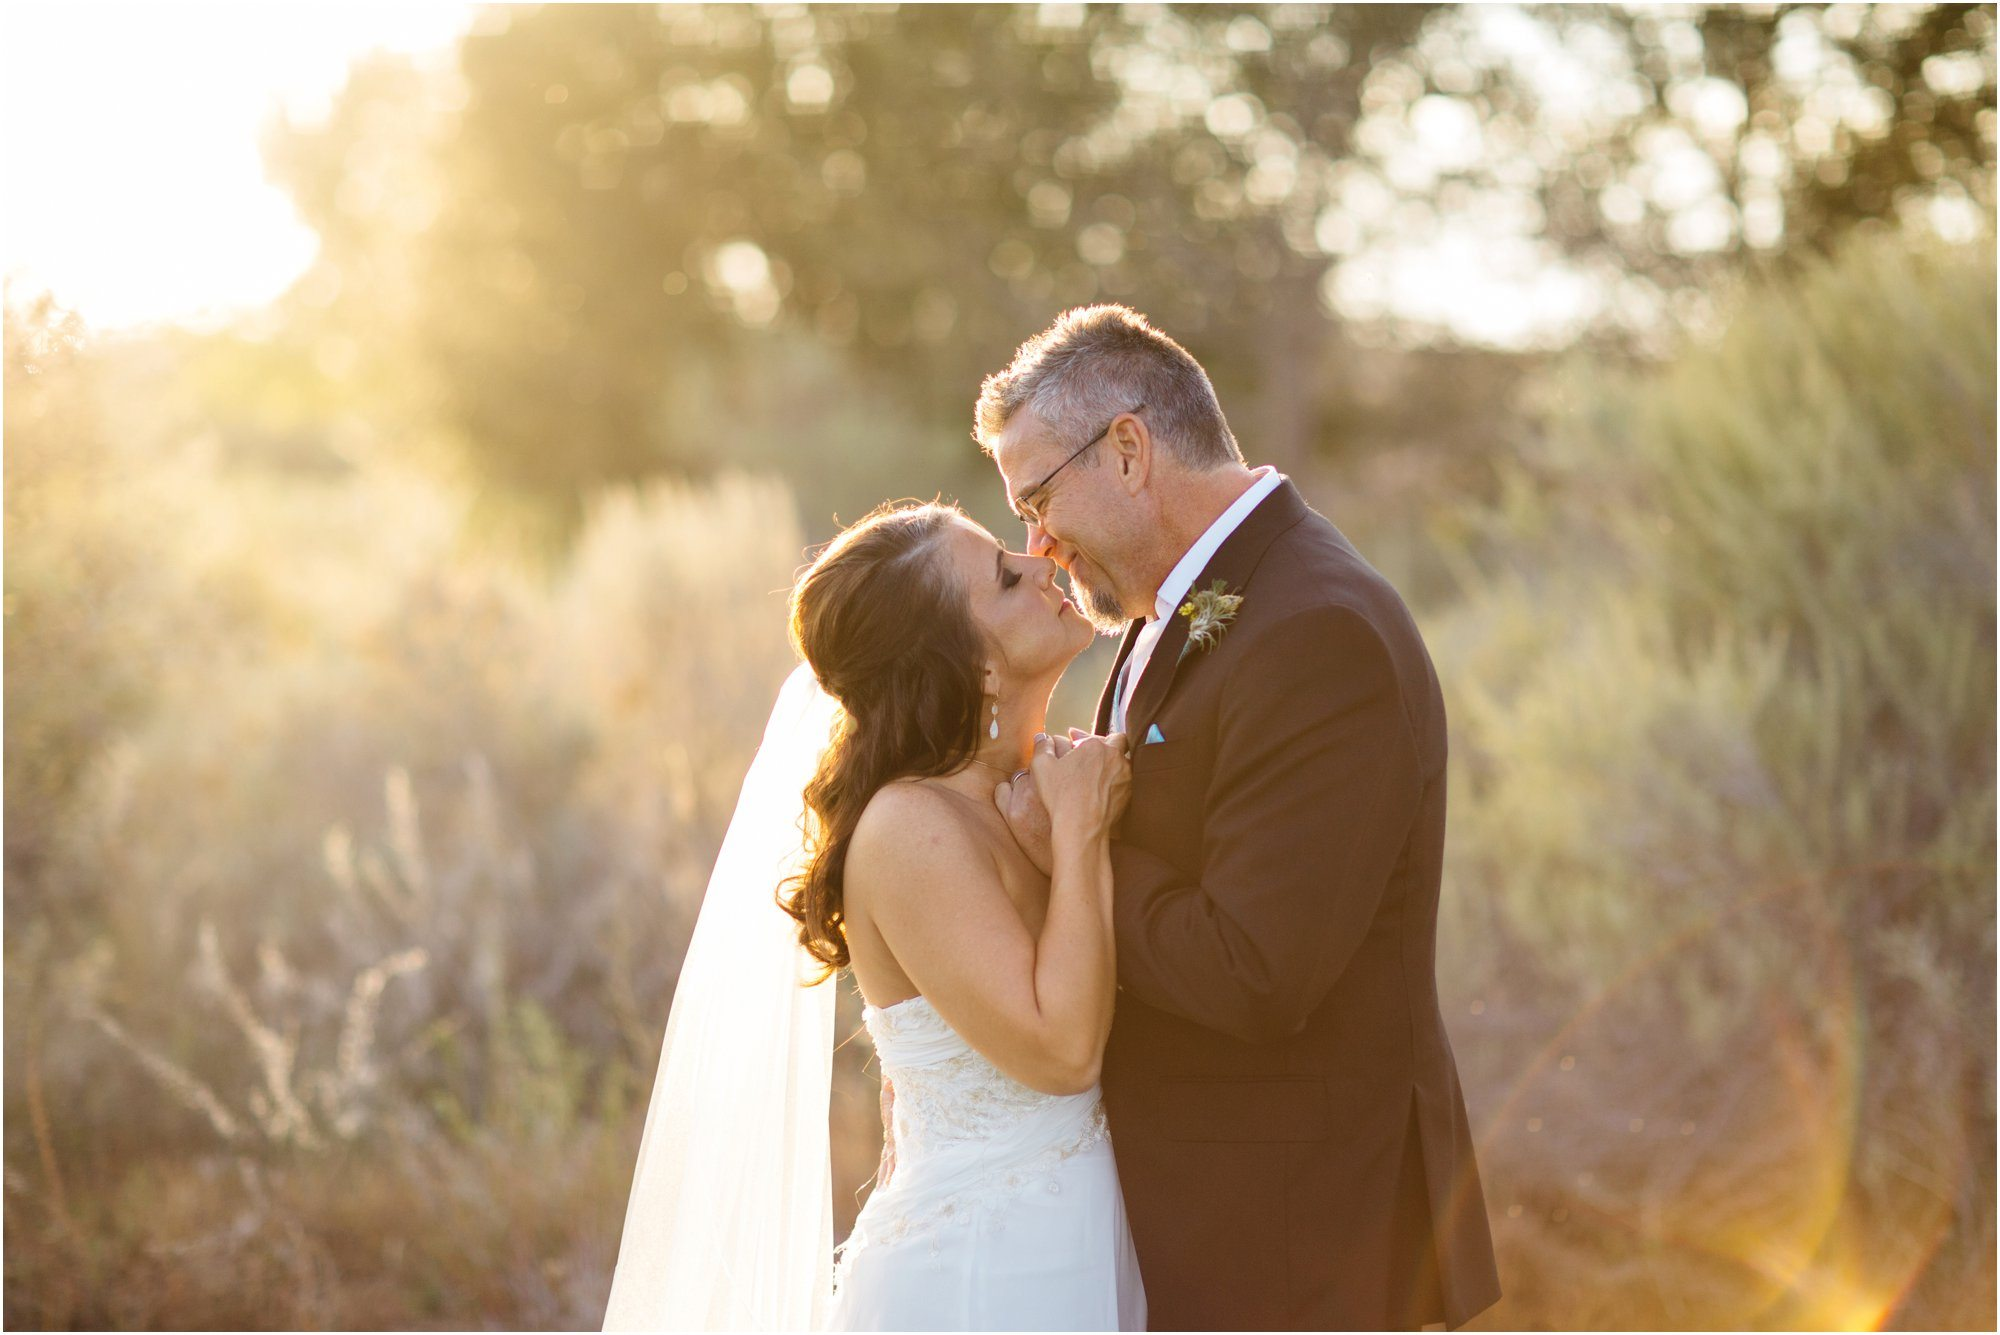 064BlueRosePhotography_ Albuquerque wedding photographers